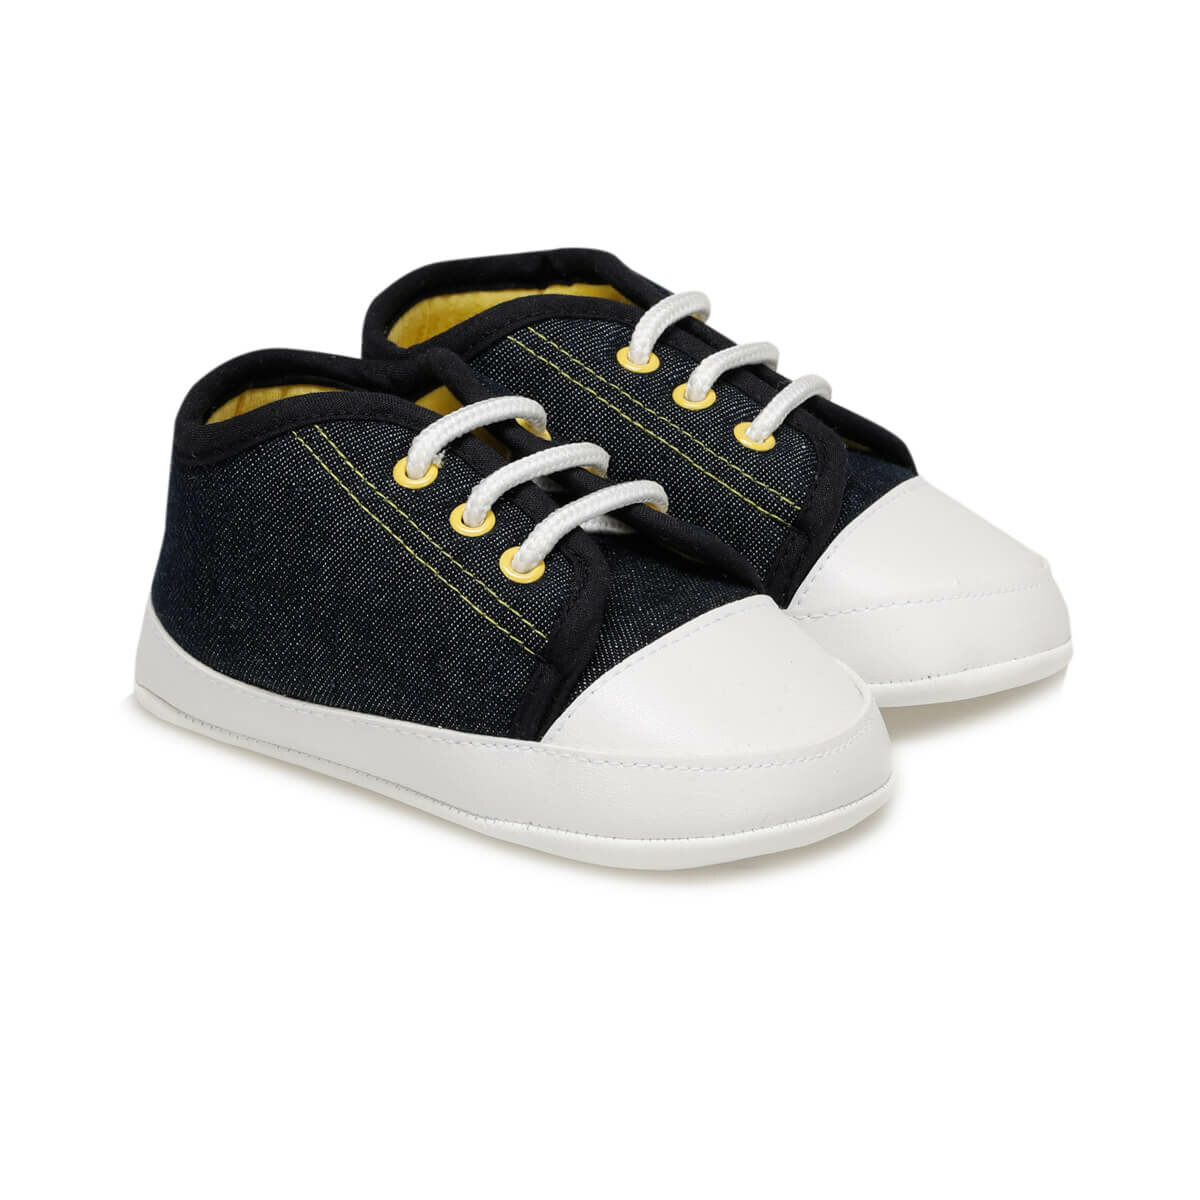 FLO 1271 Navy Blue Male Child Shoes MINITTO